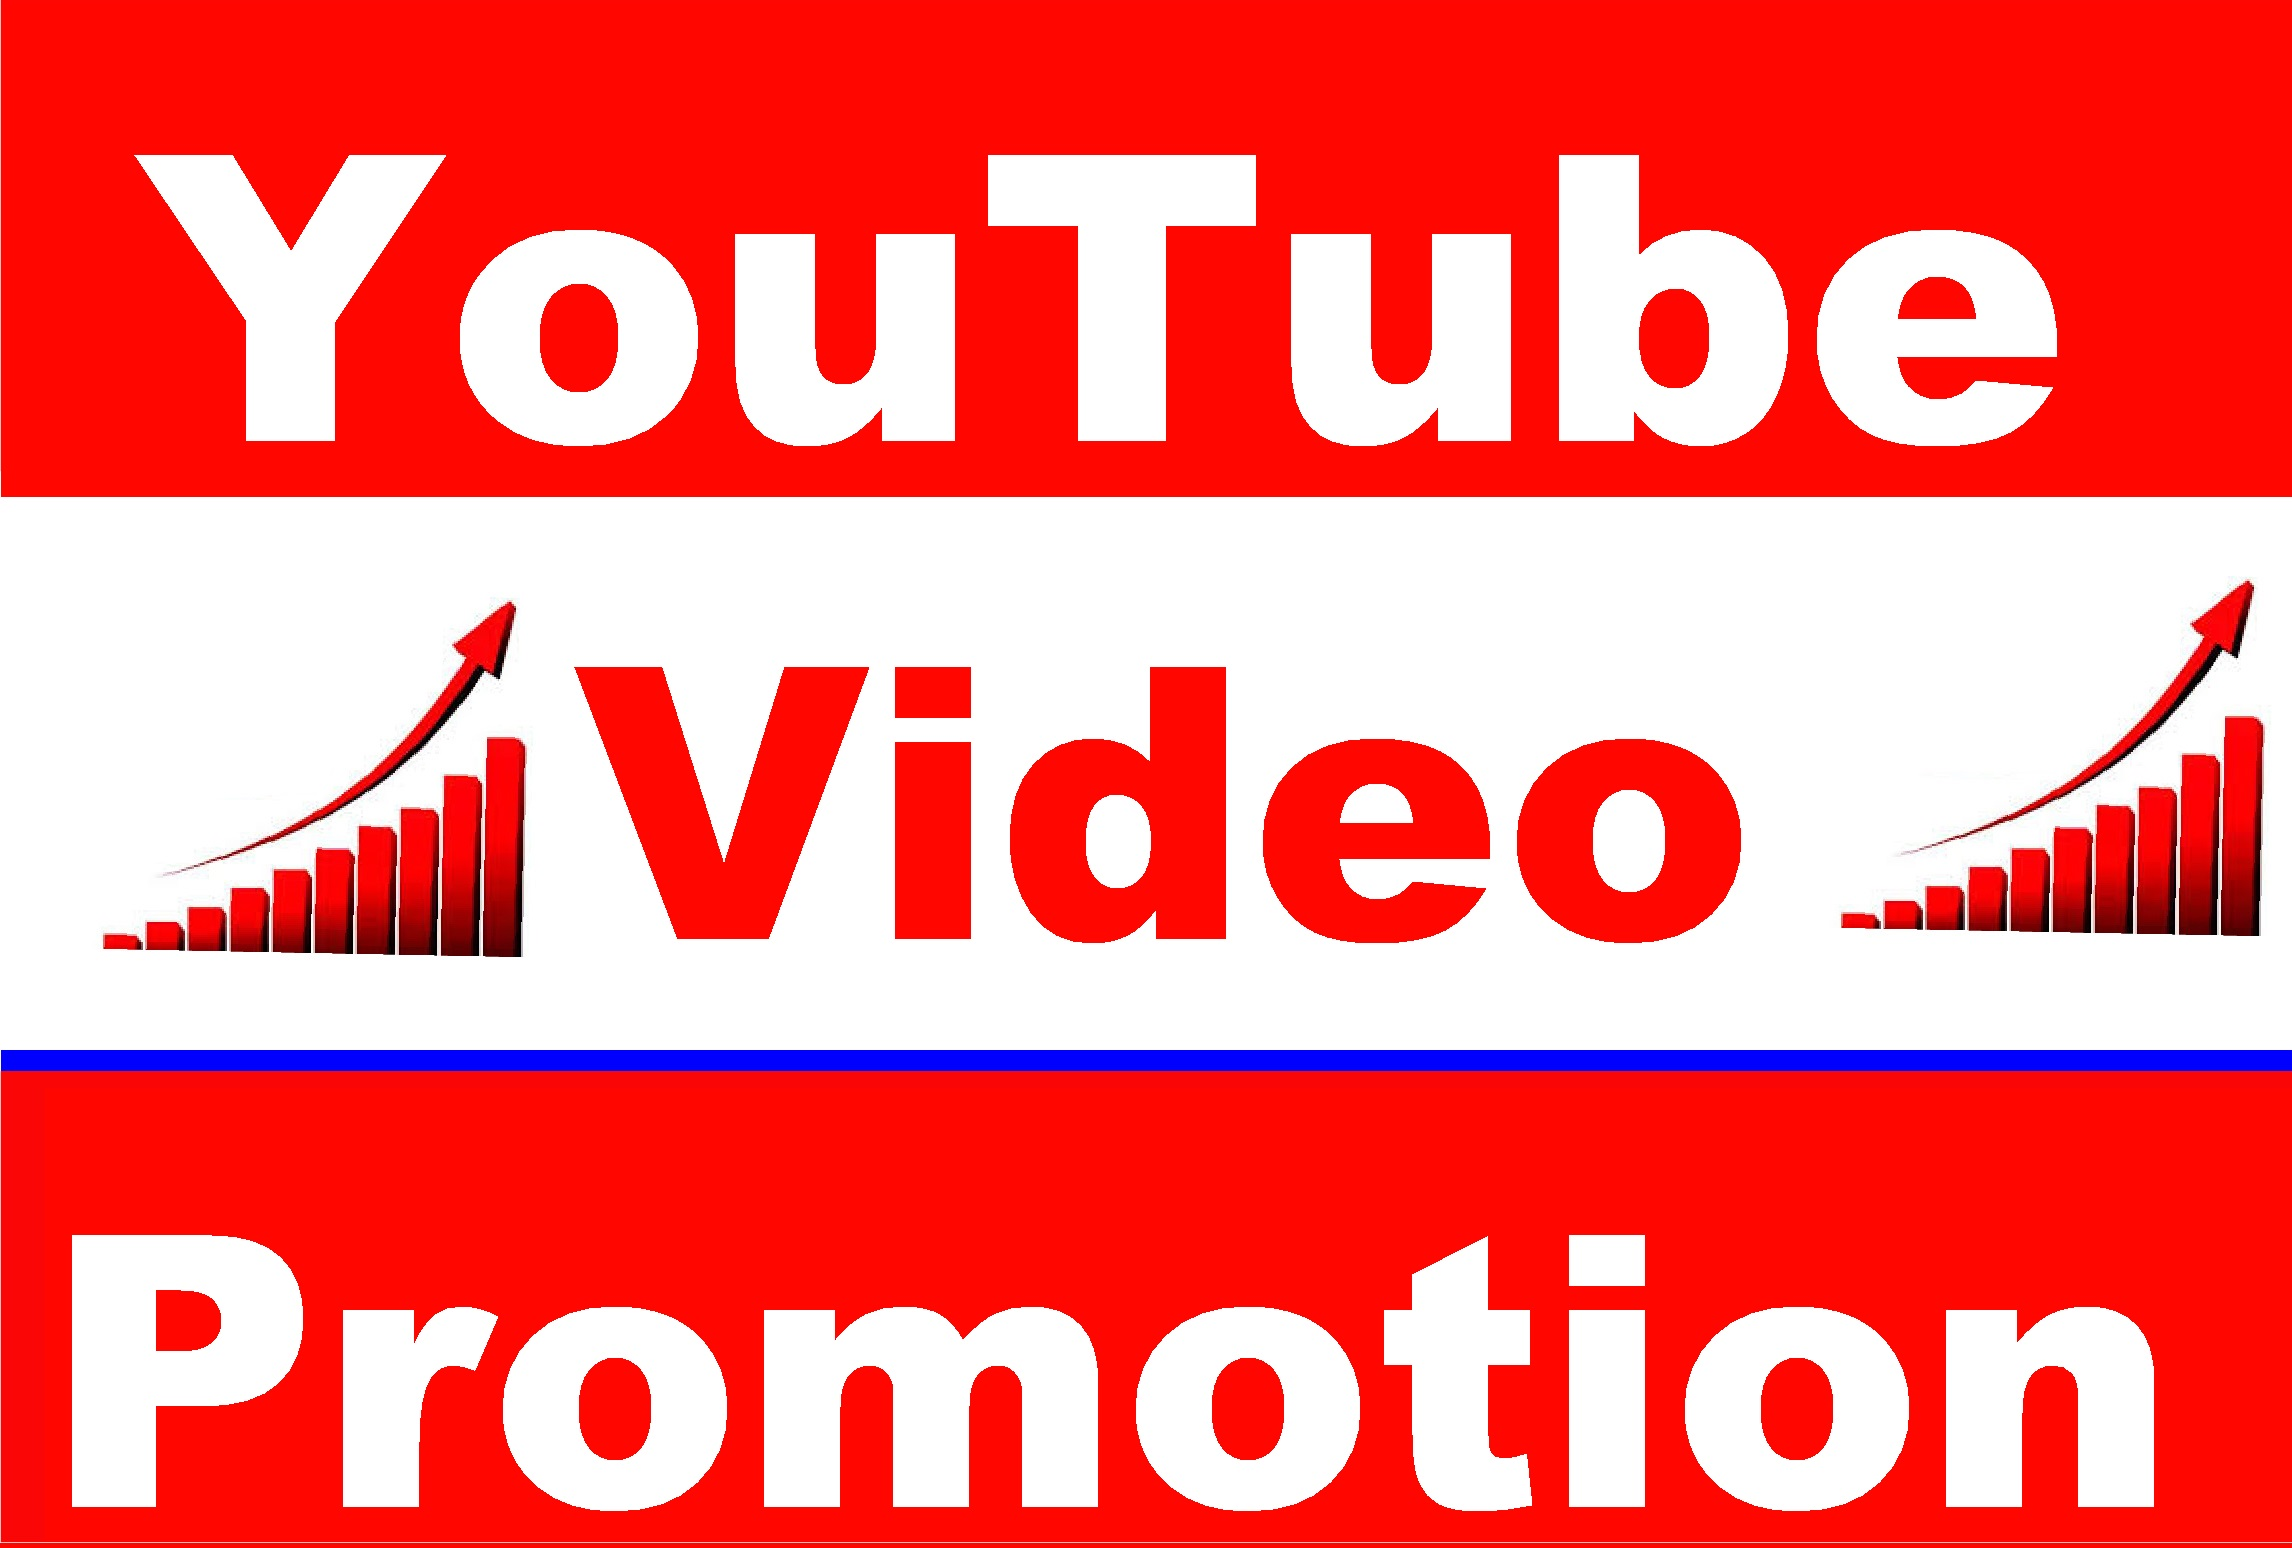 YouTube Video Promotion Worldwide Active Real Audience